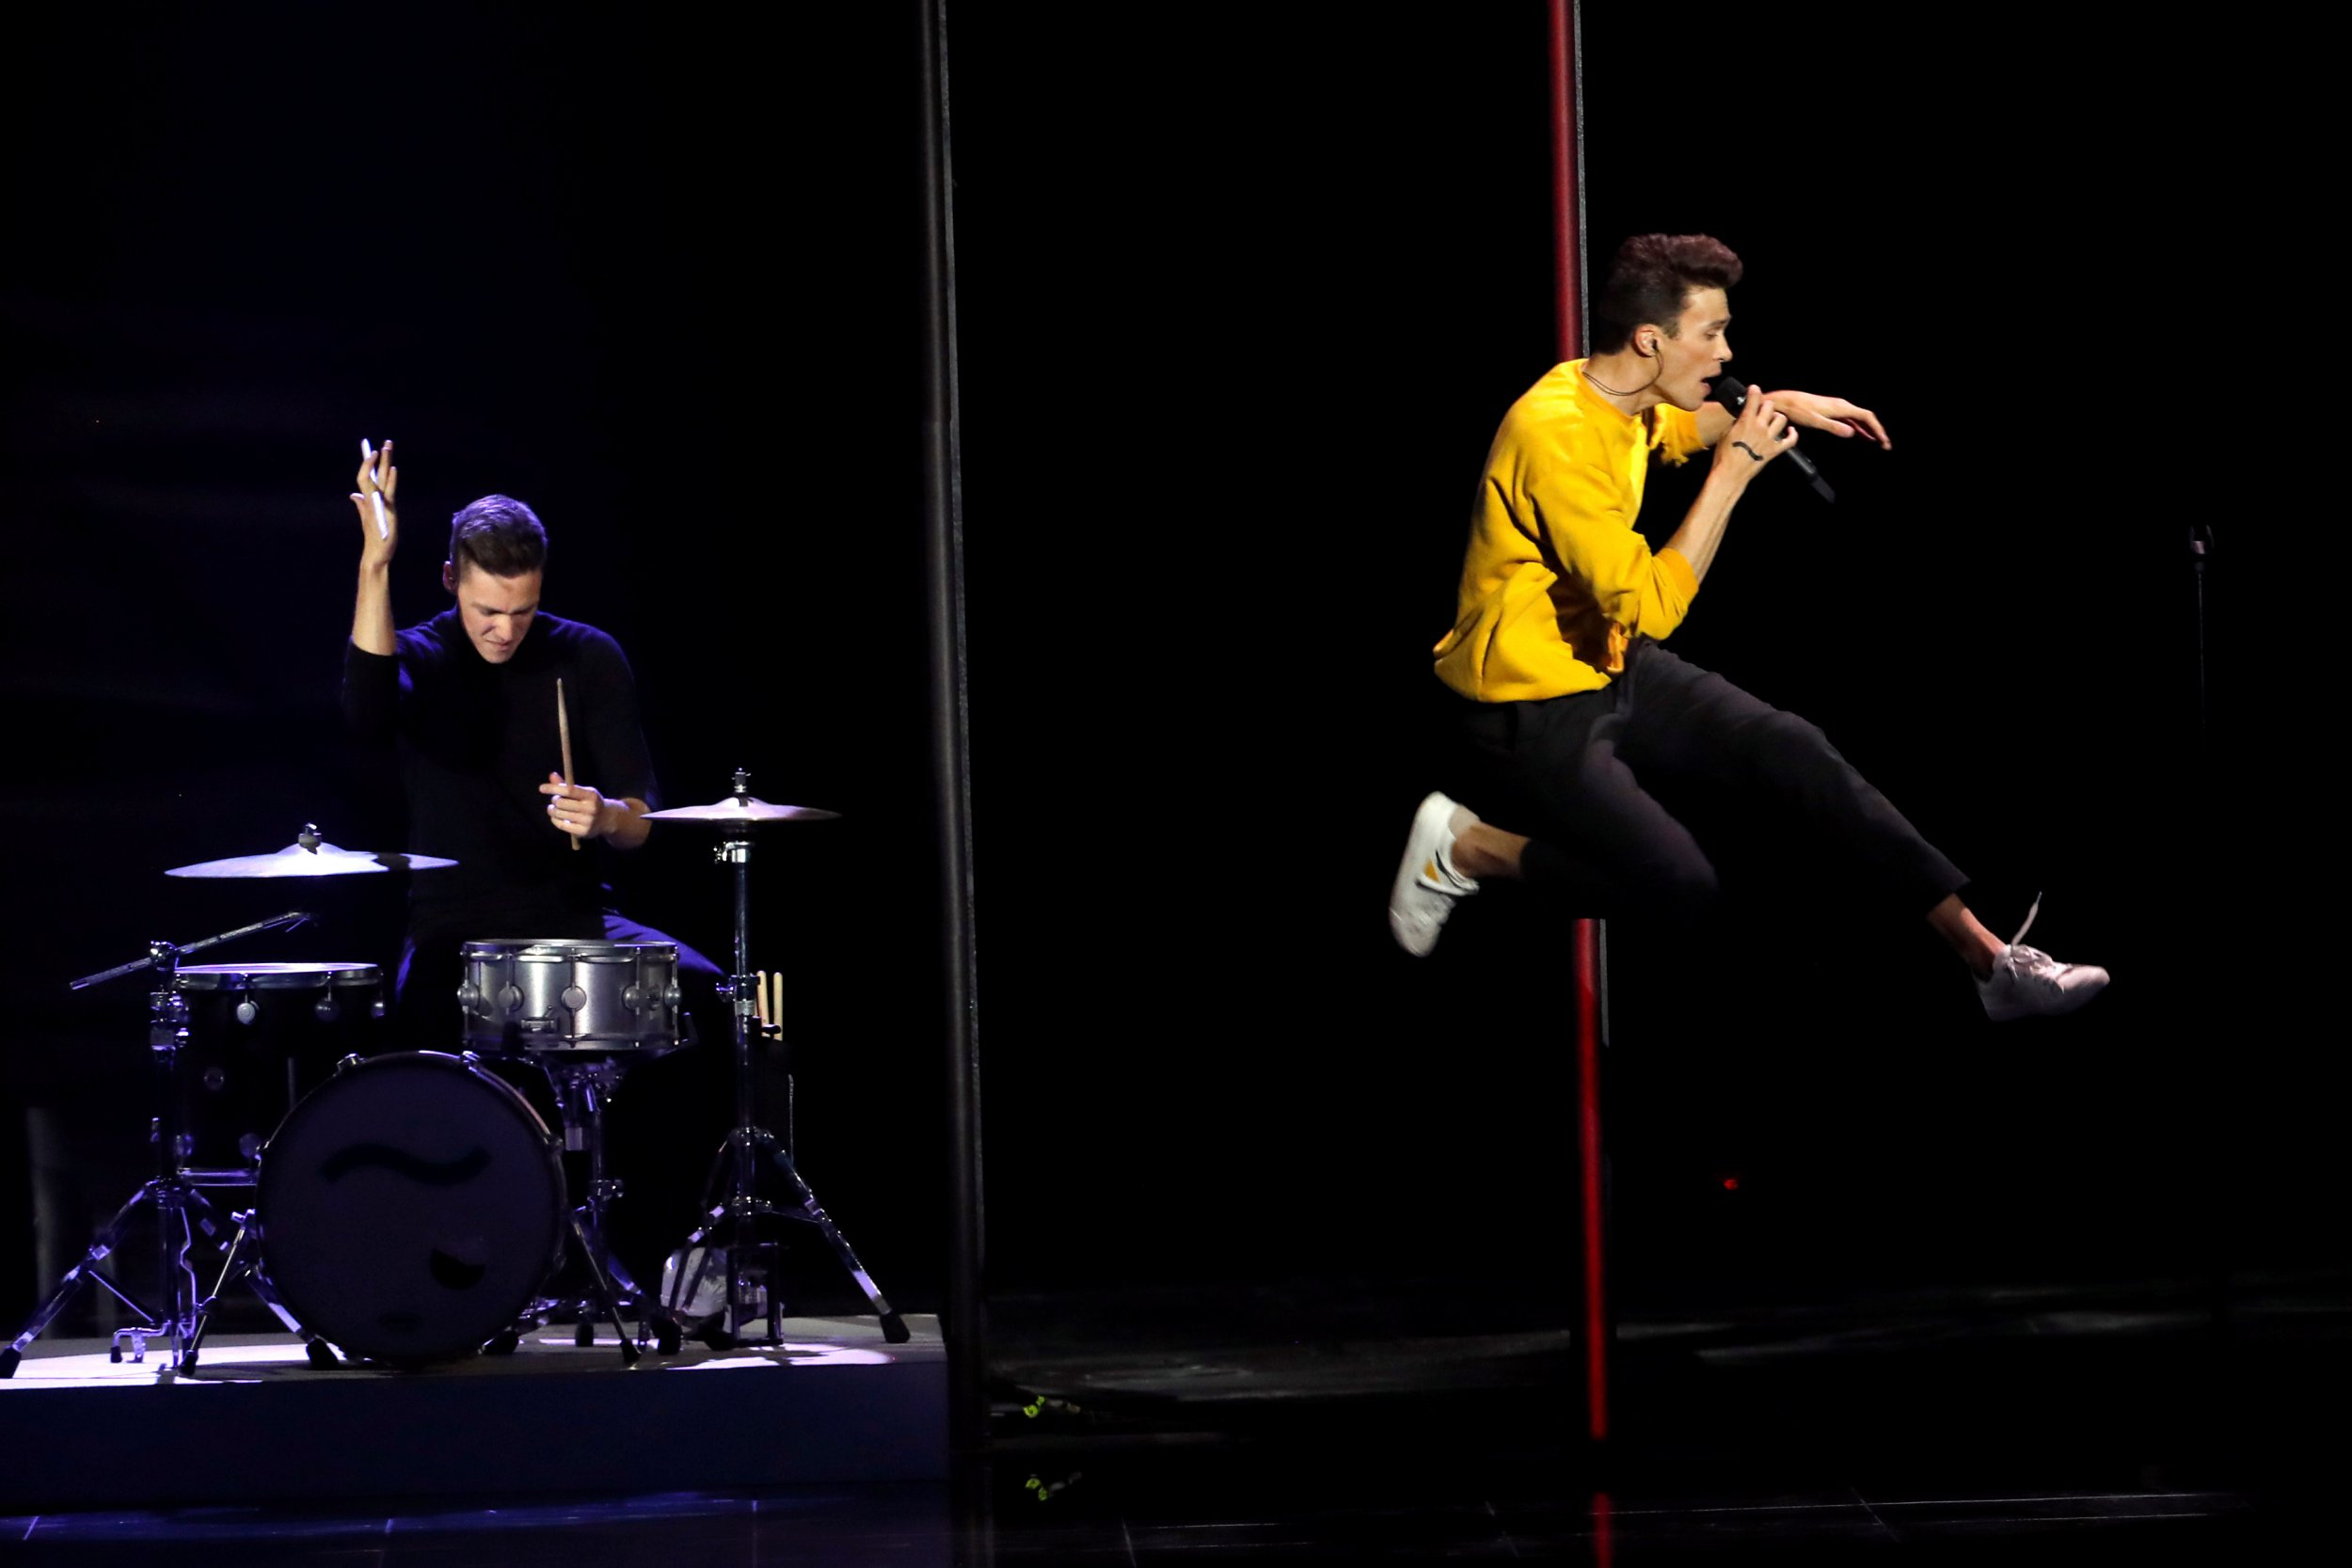 Czech Republic's Eurovision drummer accusing of miming – but he's forbidden from playing live